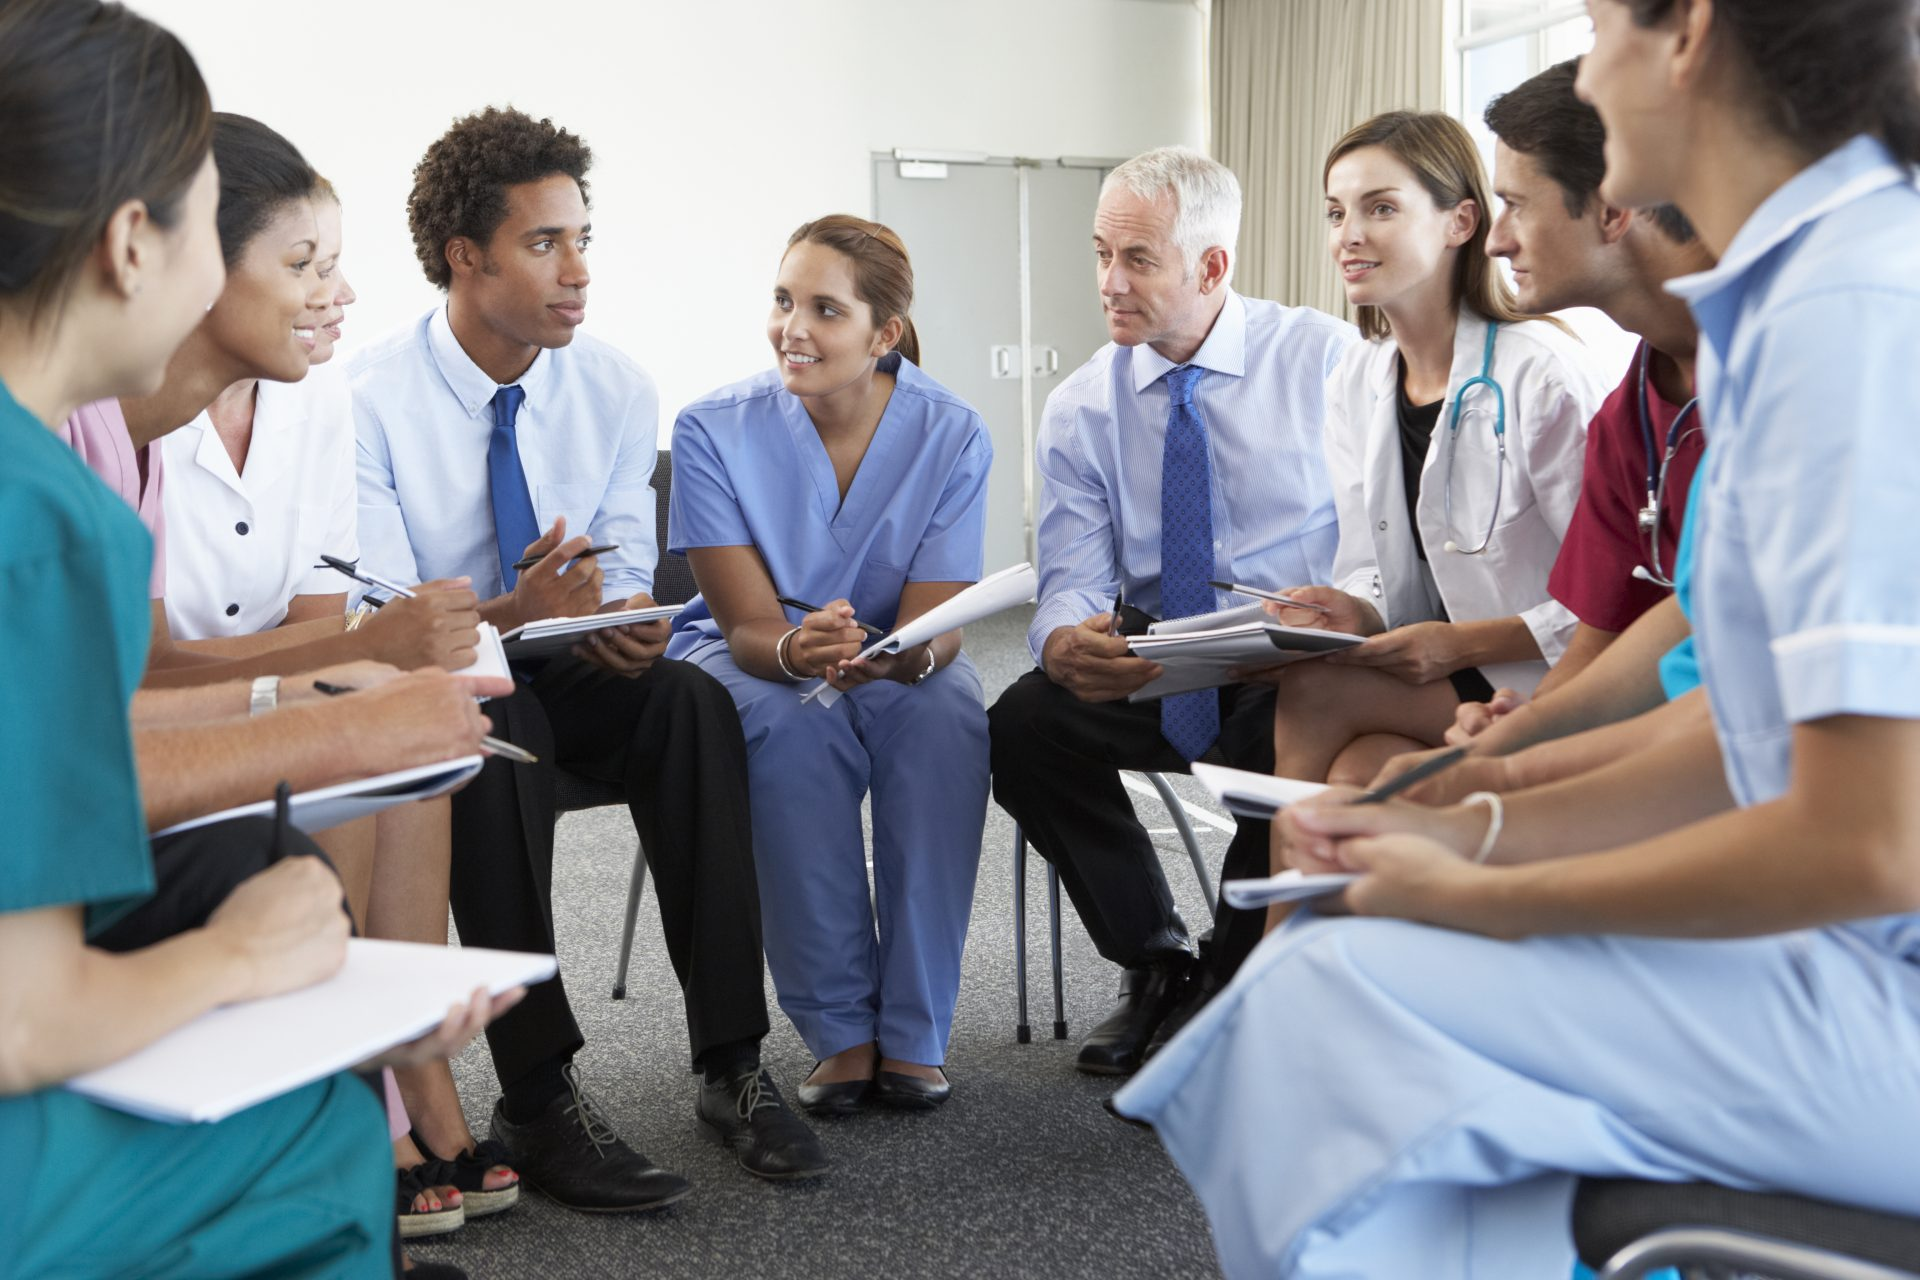 a group of doctors conversing in a circle of chairs